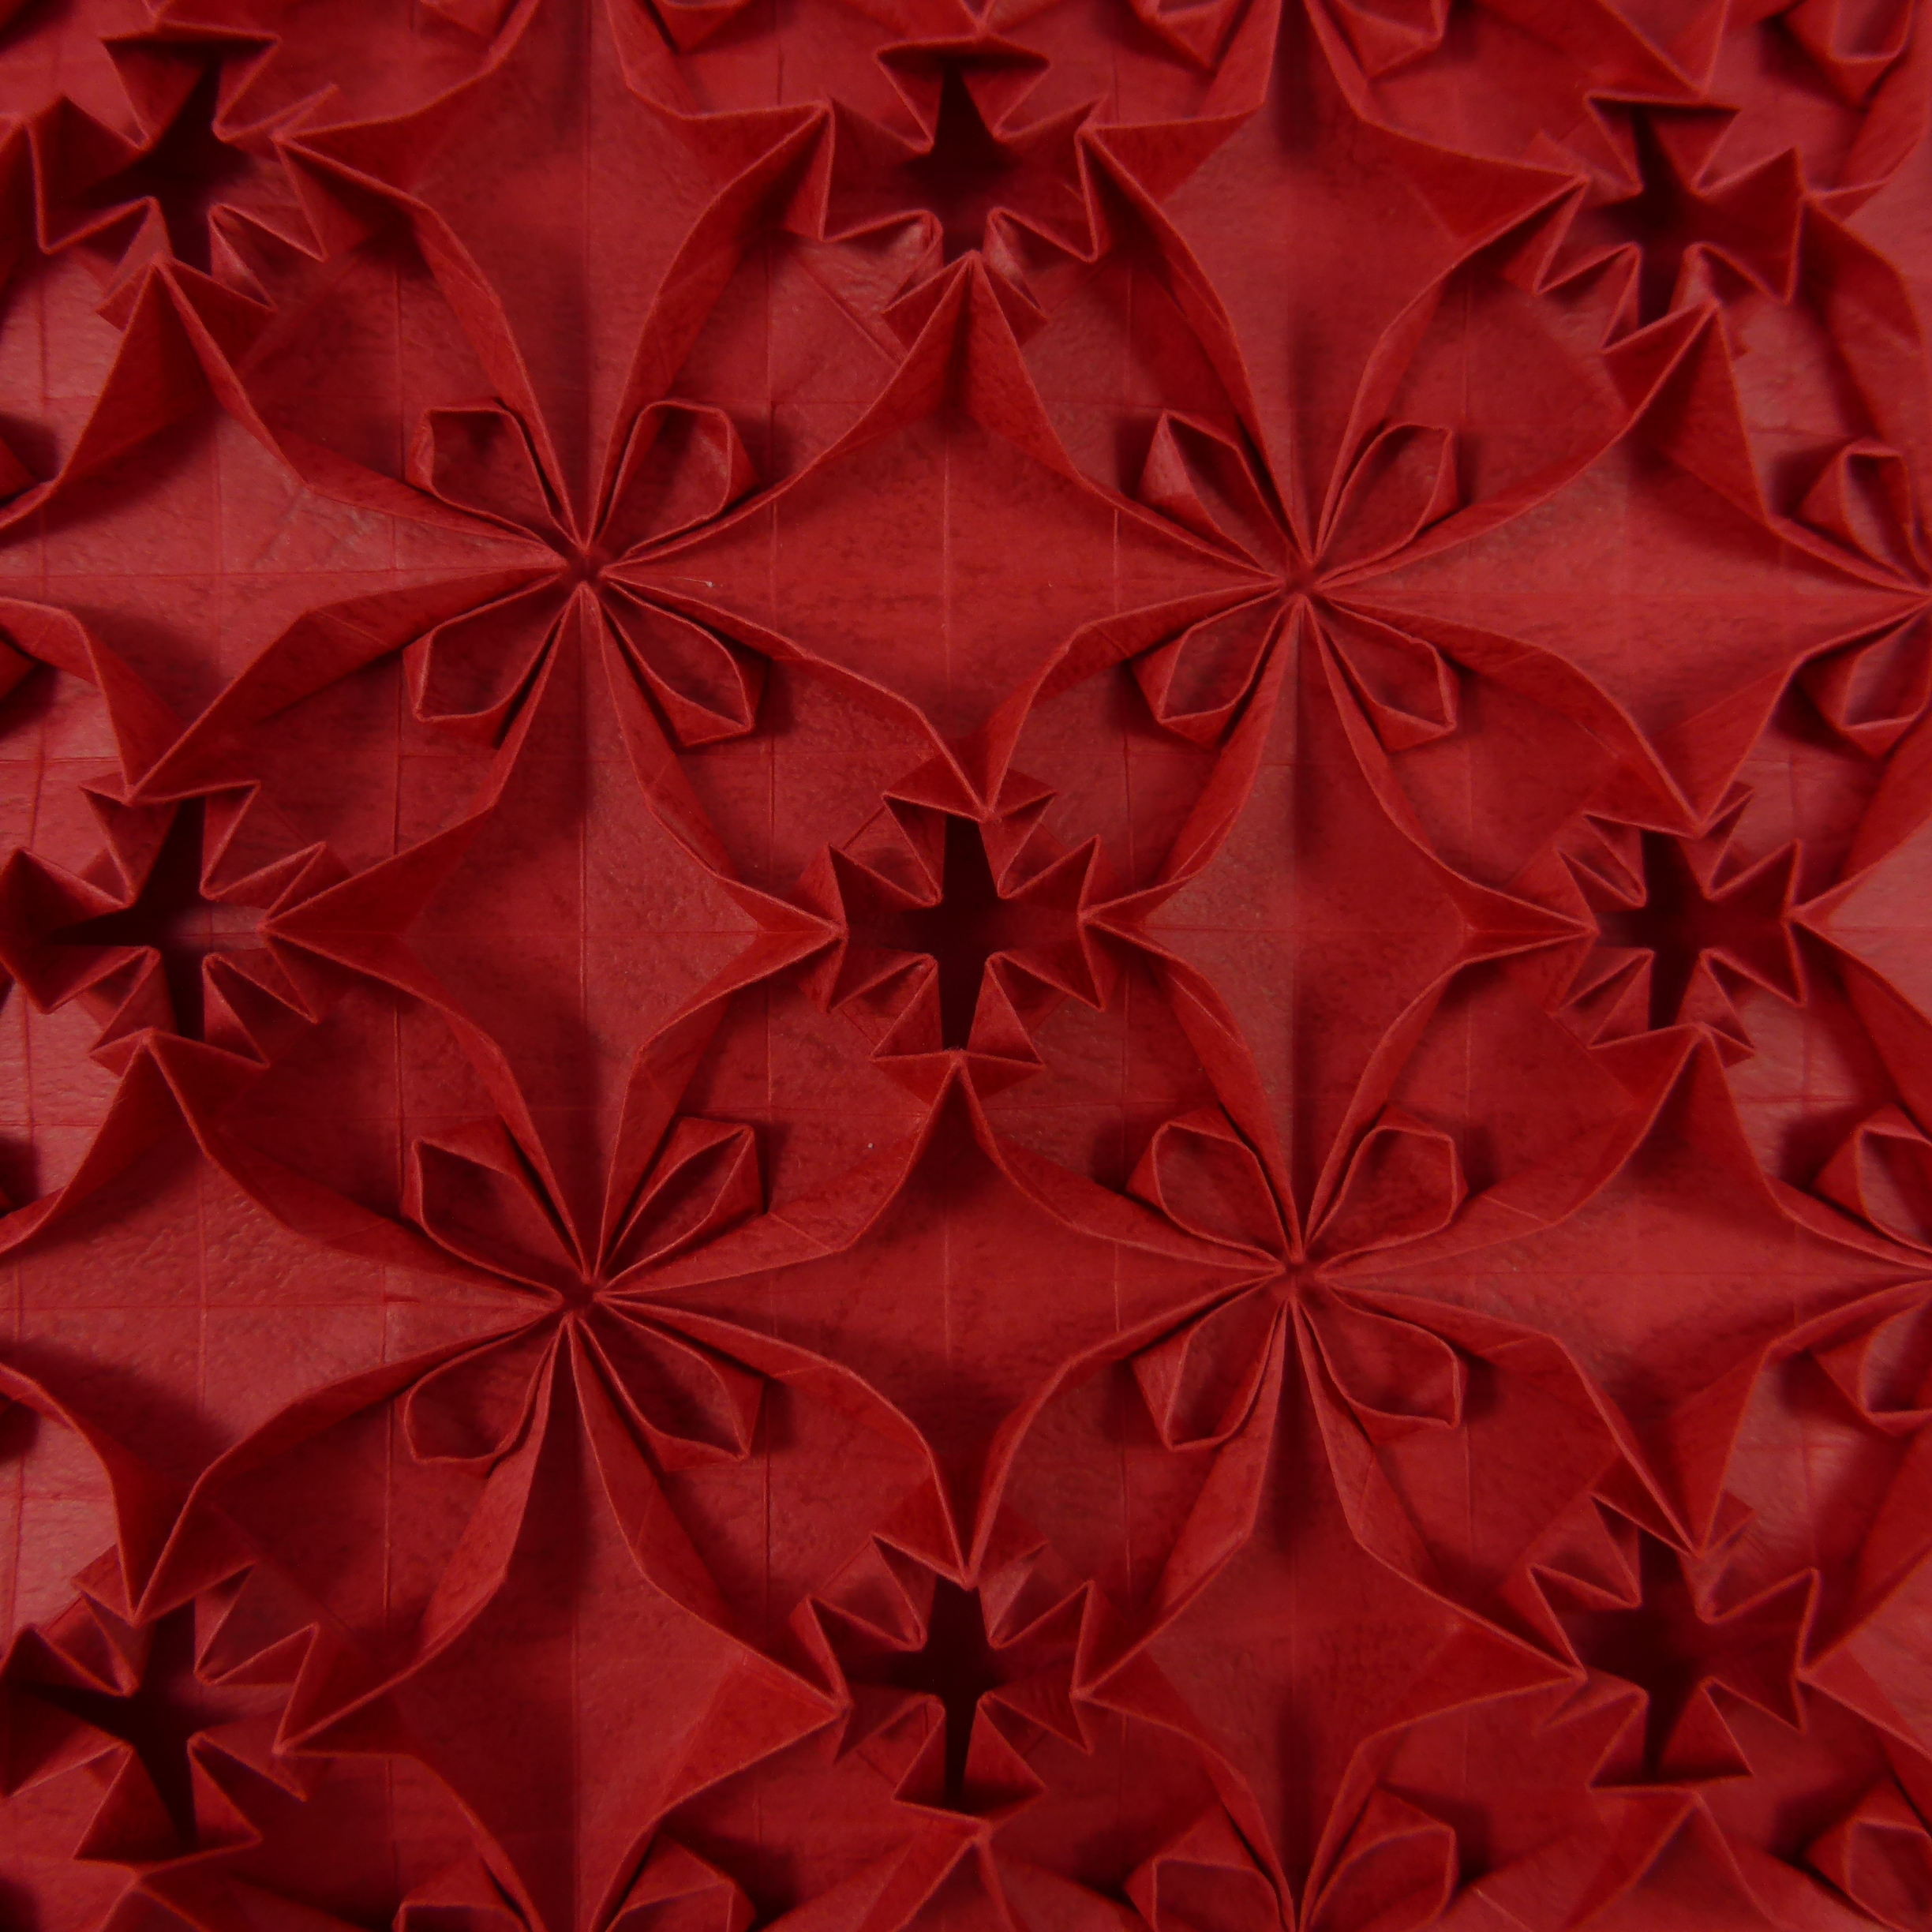 Two In One Flower Tessellation Close Up 1